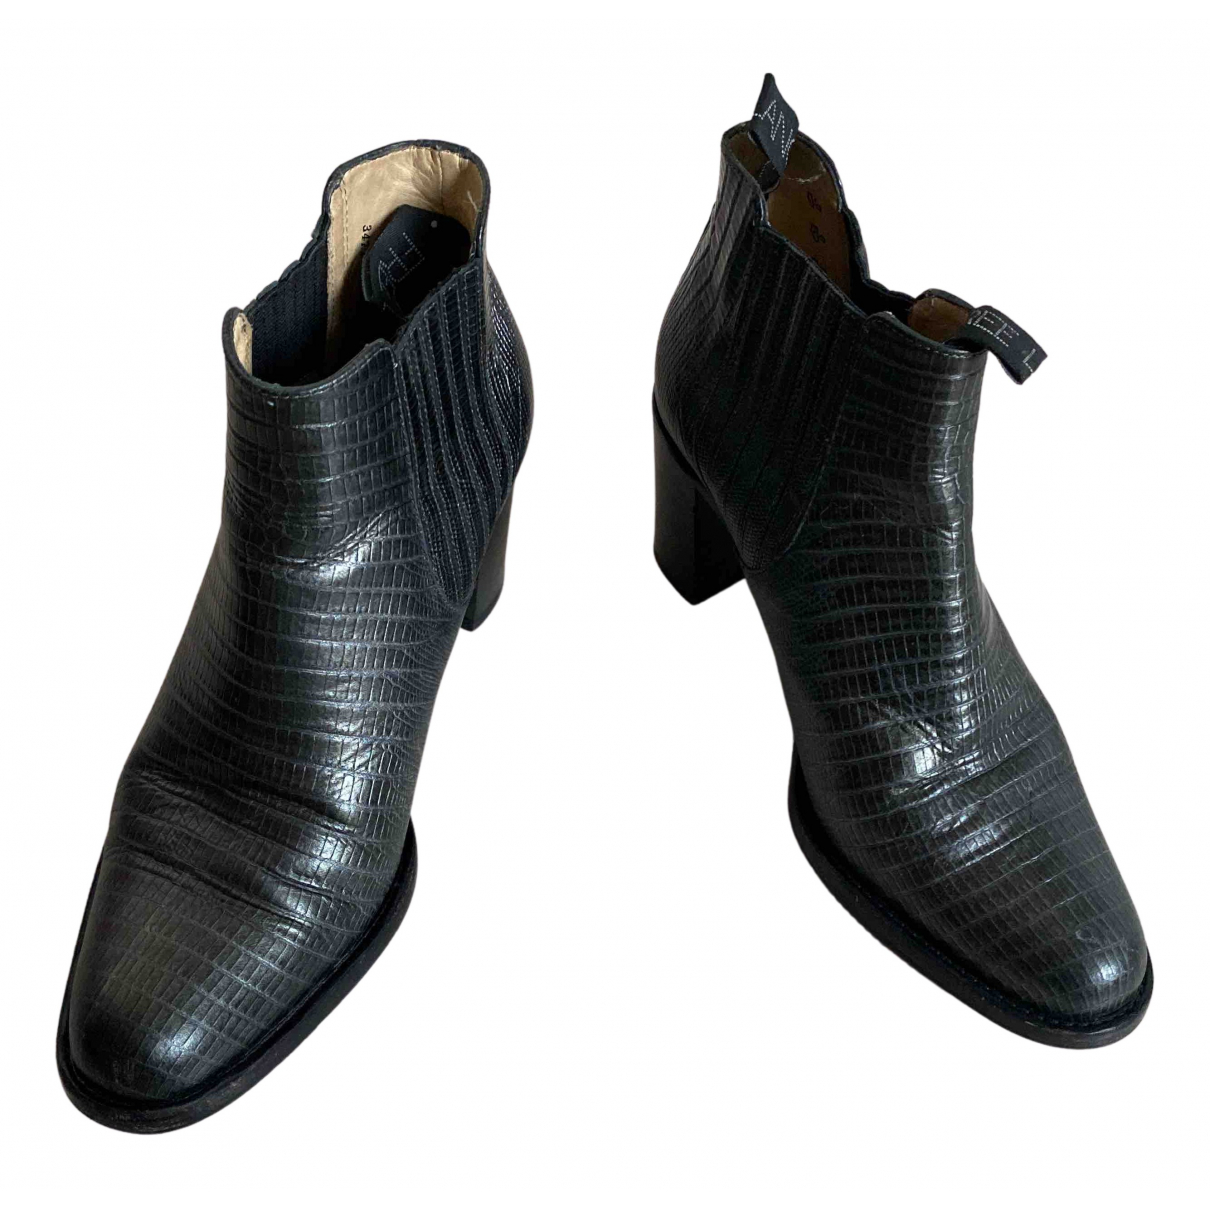 Free Lance N Metallic Leather Ankle boots for Women 38 EU